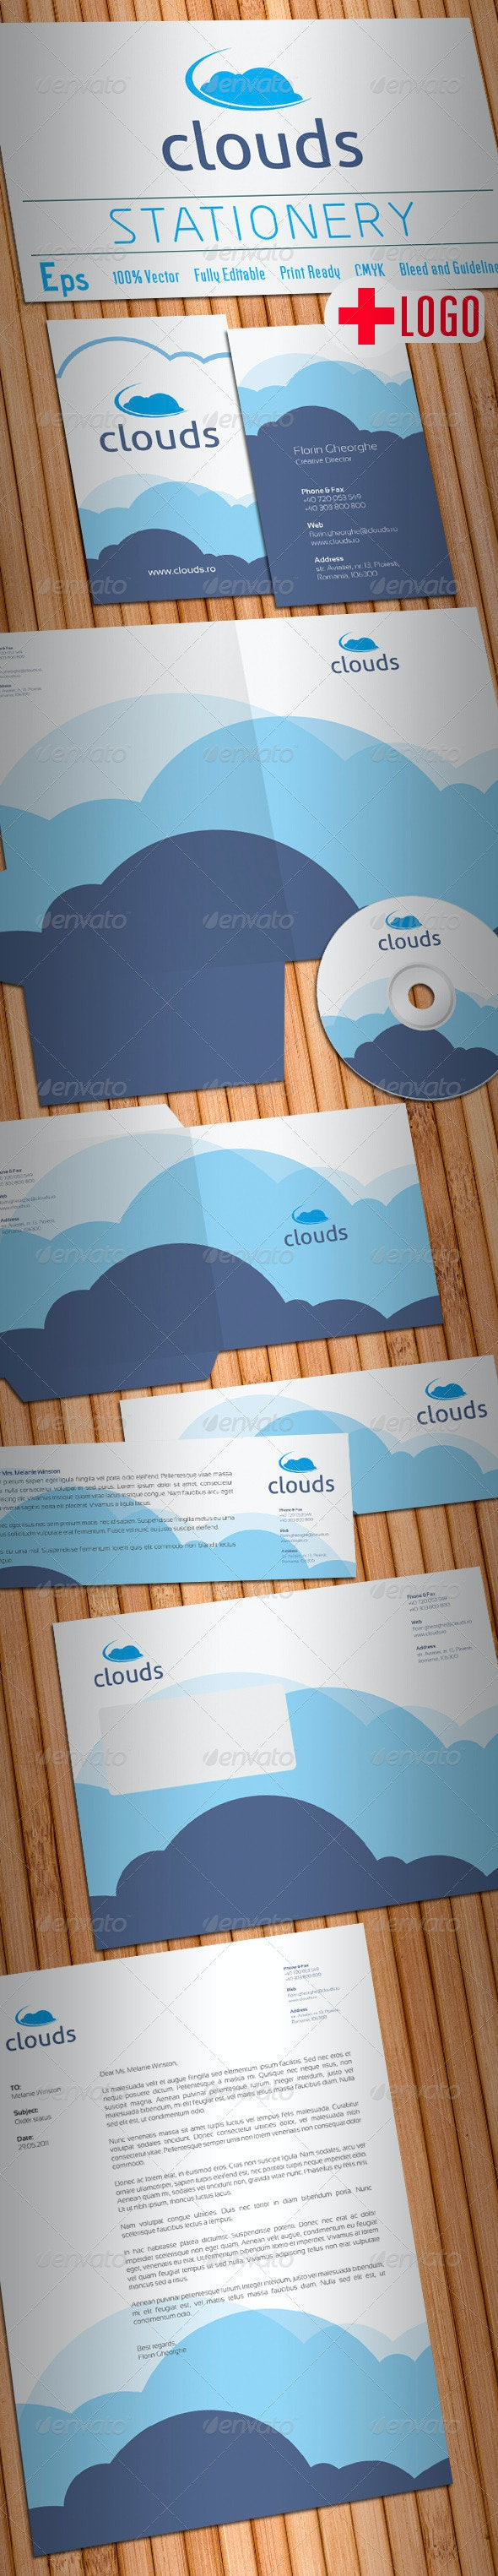 Clouds Stationery - Stationery Print Templates